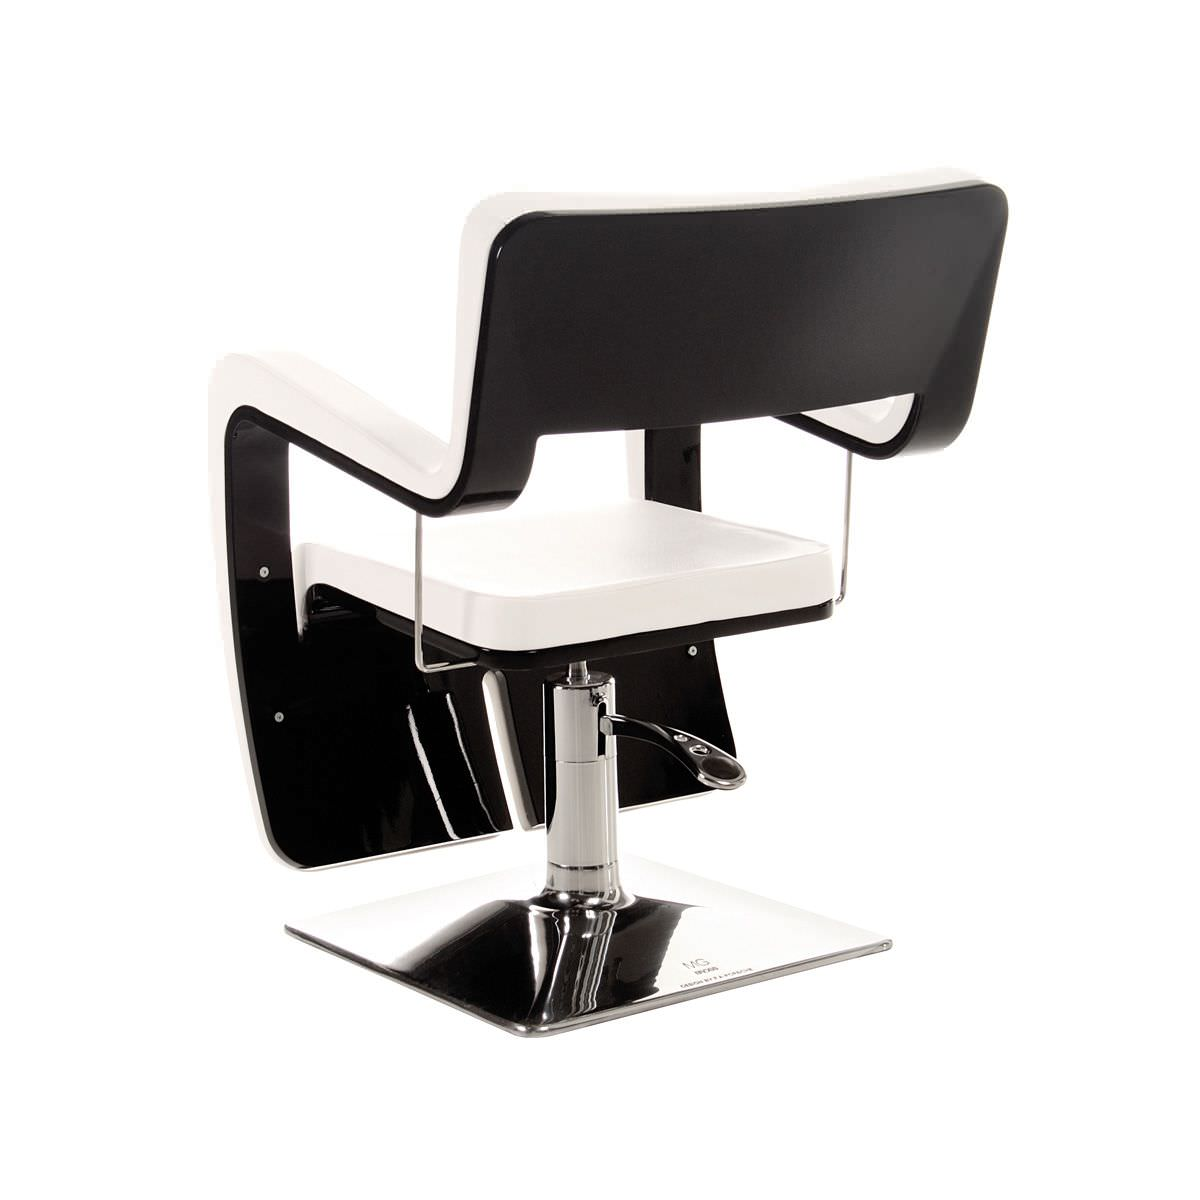 vinyl beauty salon chair central base with hydraulic pump swivel black design